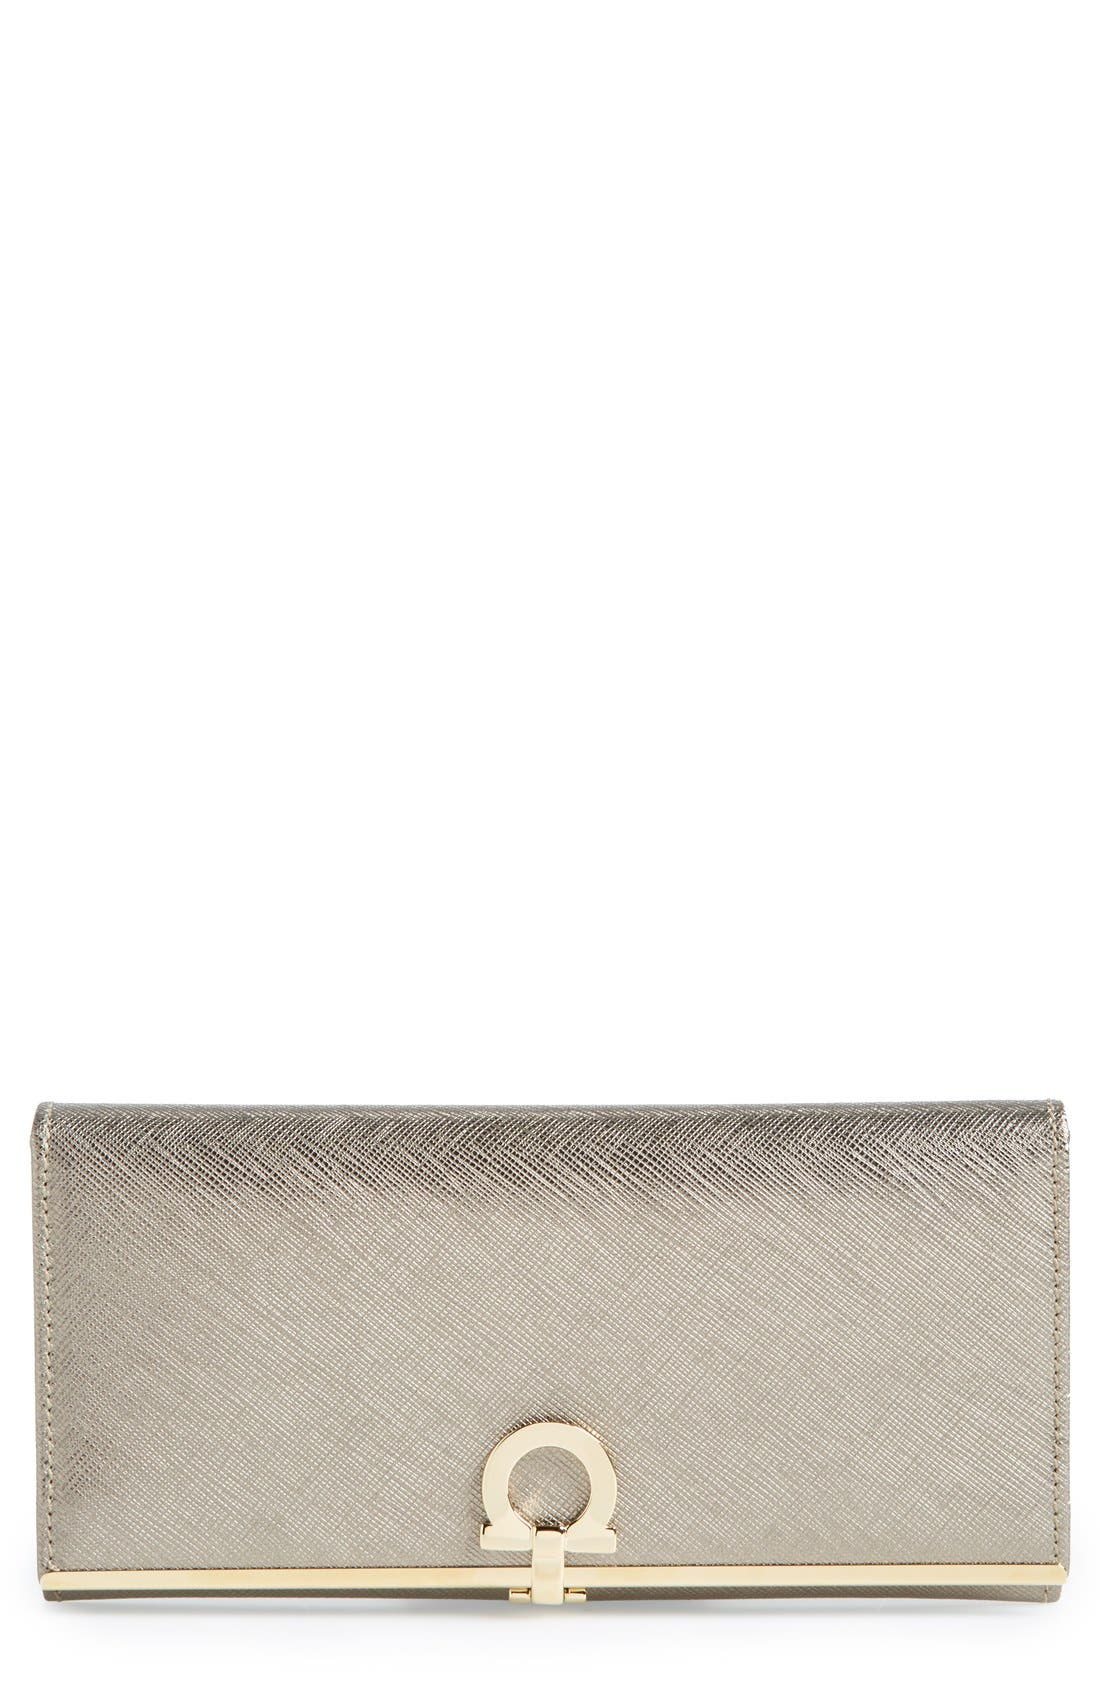 Alternate Image 1 Selected - Salvatore Ferragamo 'Icona Bar' Saffiano Calfskin Wallet